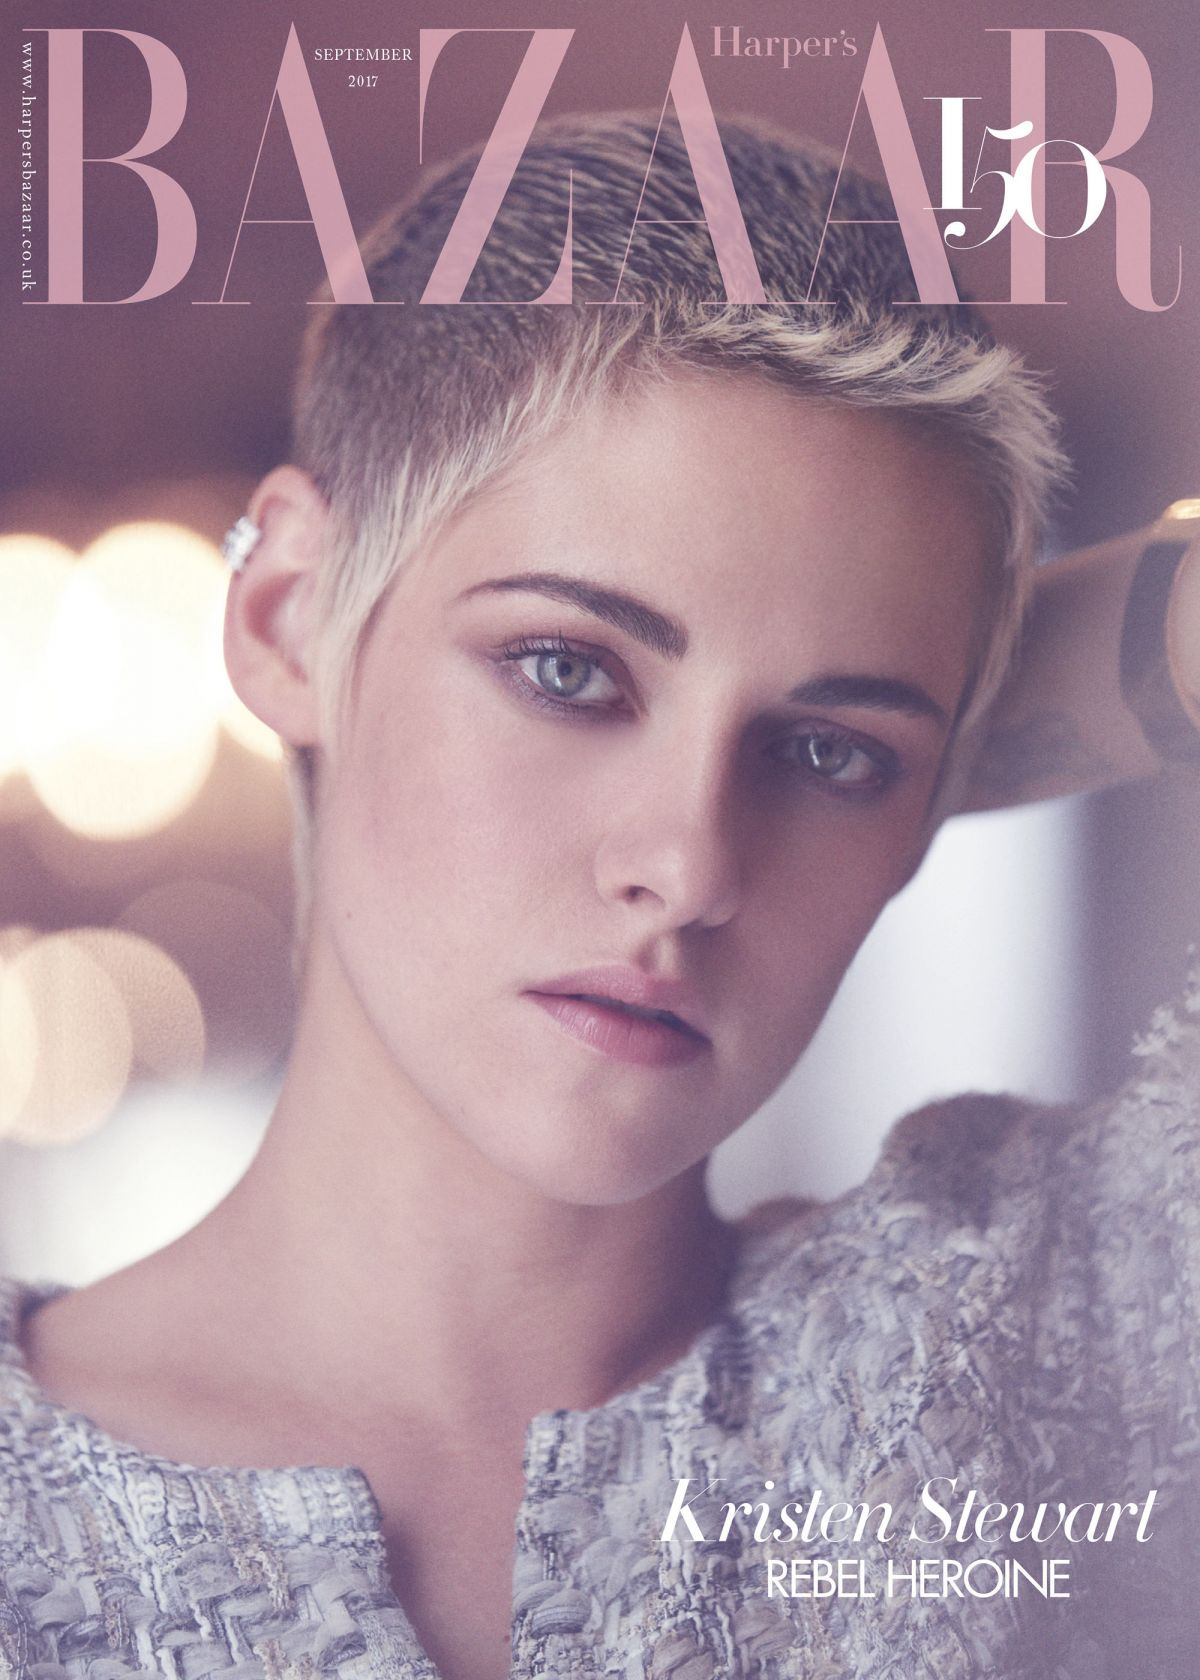 Kristen Stewart For Harper's Bazaar UK September 2017   kristen-stewart-for-harper-s-bazaar-uk-september-2017_3